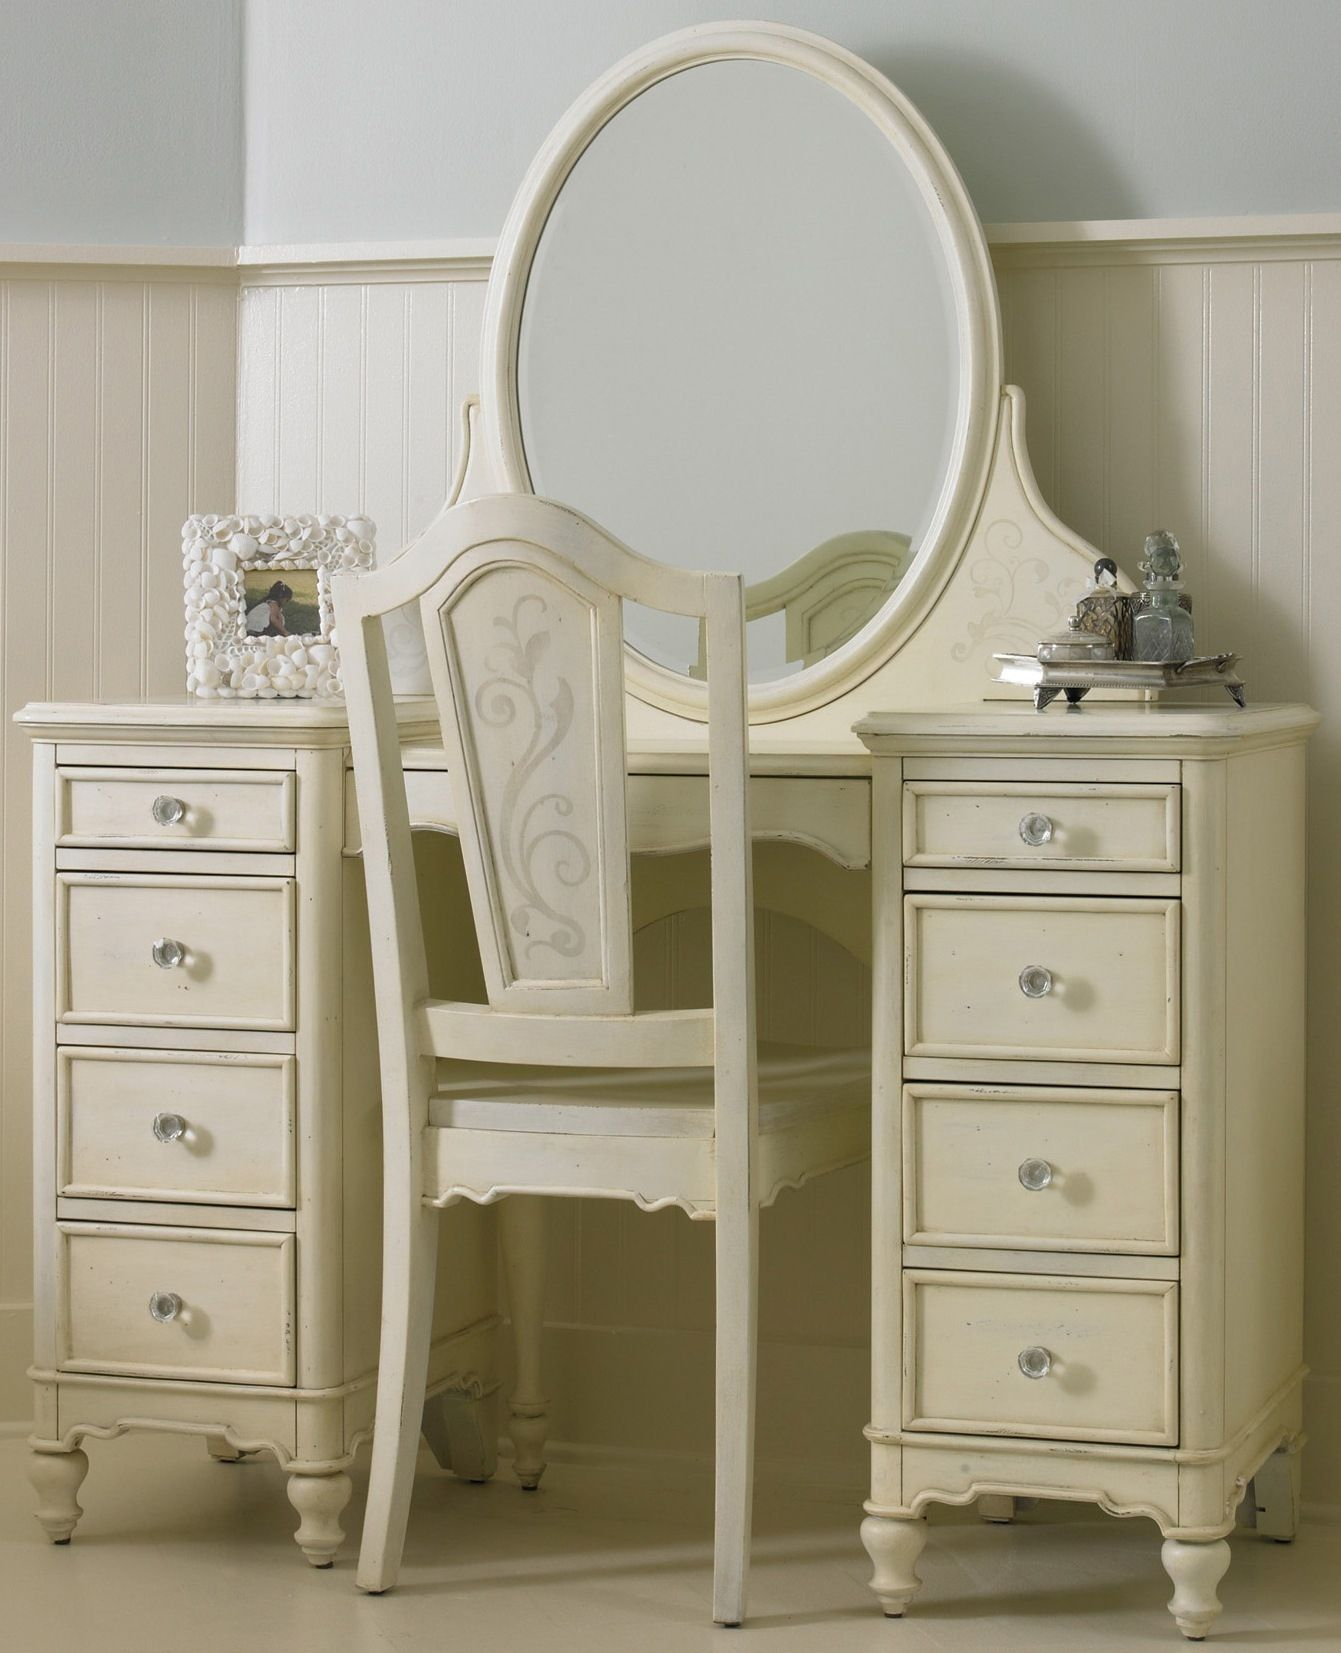 Hooker Furniture Bathroom Vanity: Cheap Opus Designs By Hooker Vanity Desk Set In Beige